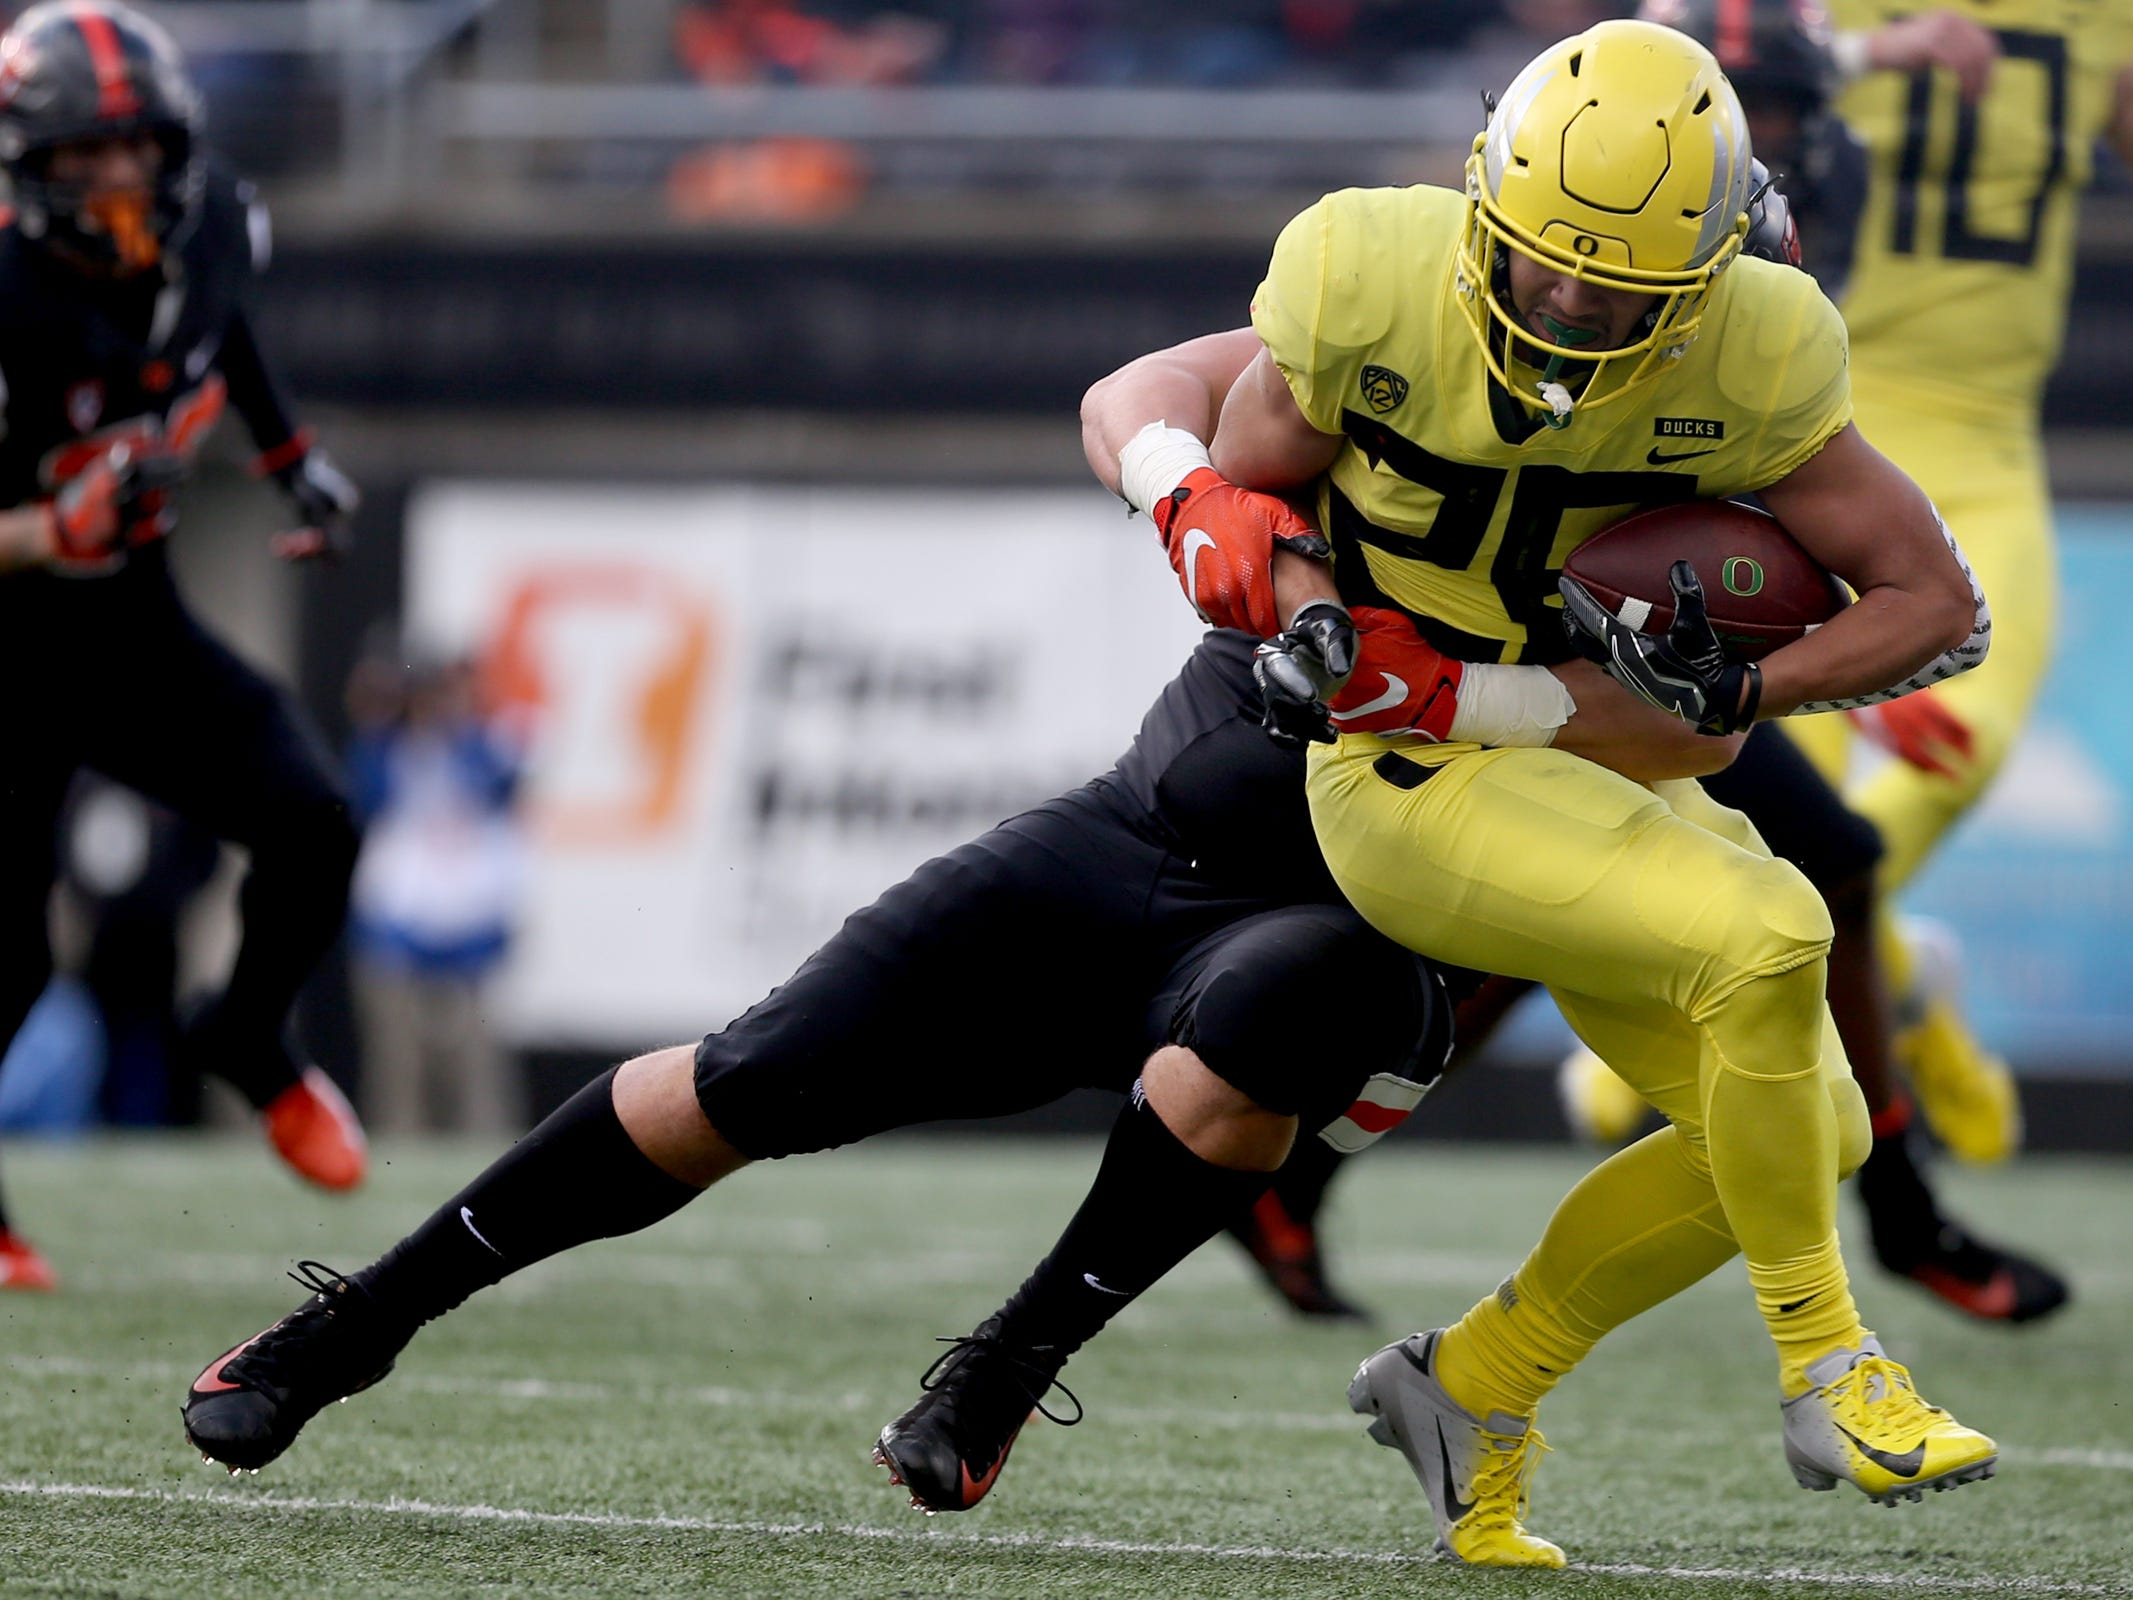 Oregon's Travis Dye (26) is grabbed by Oregon State's Elu Aydon (99) in the Oregon vs. Oregon State Civil war football game at Oregon State University in Corvallis on Friday, Nov. 23, 2018.